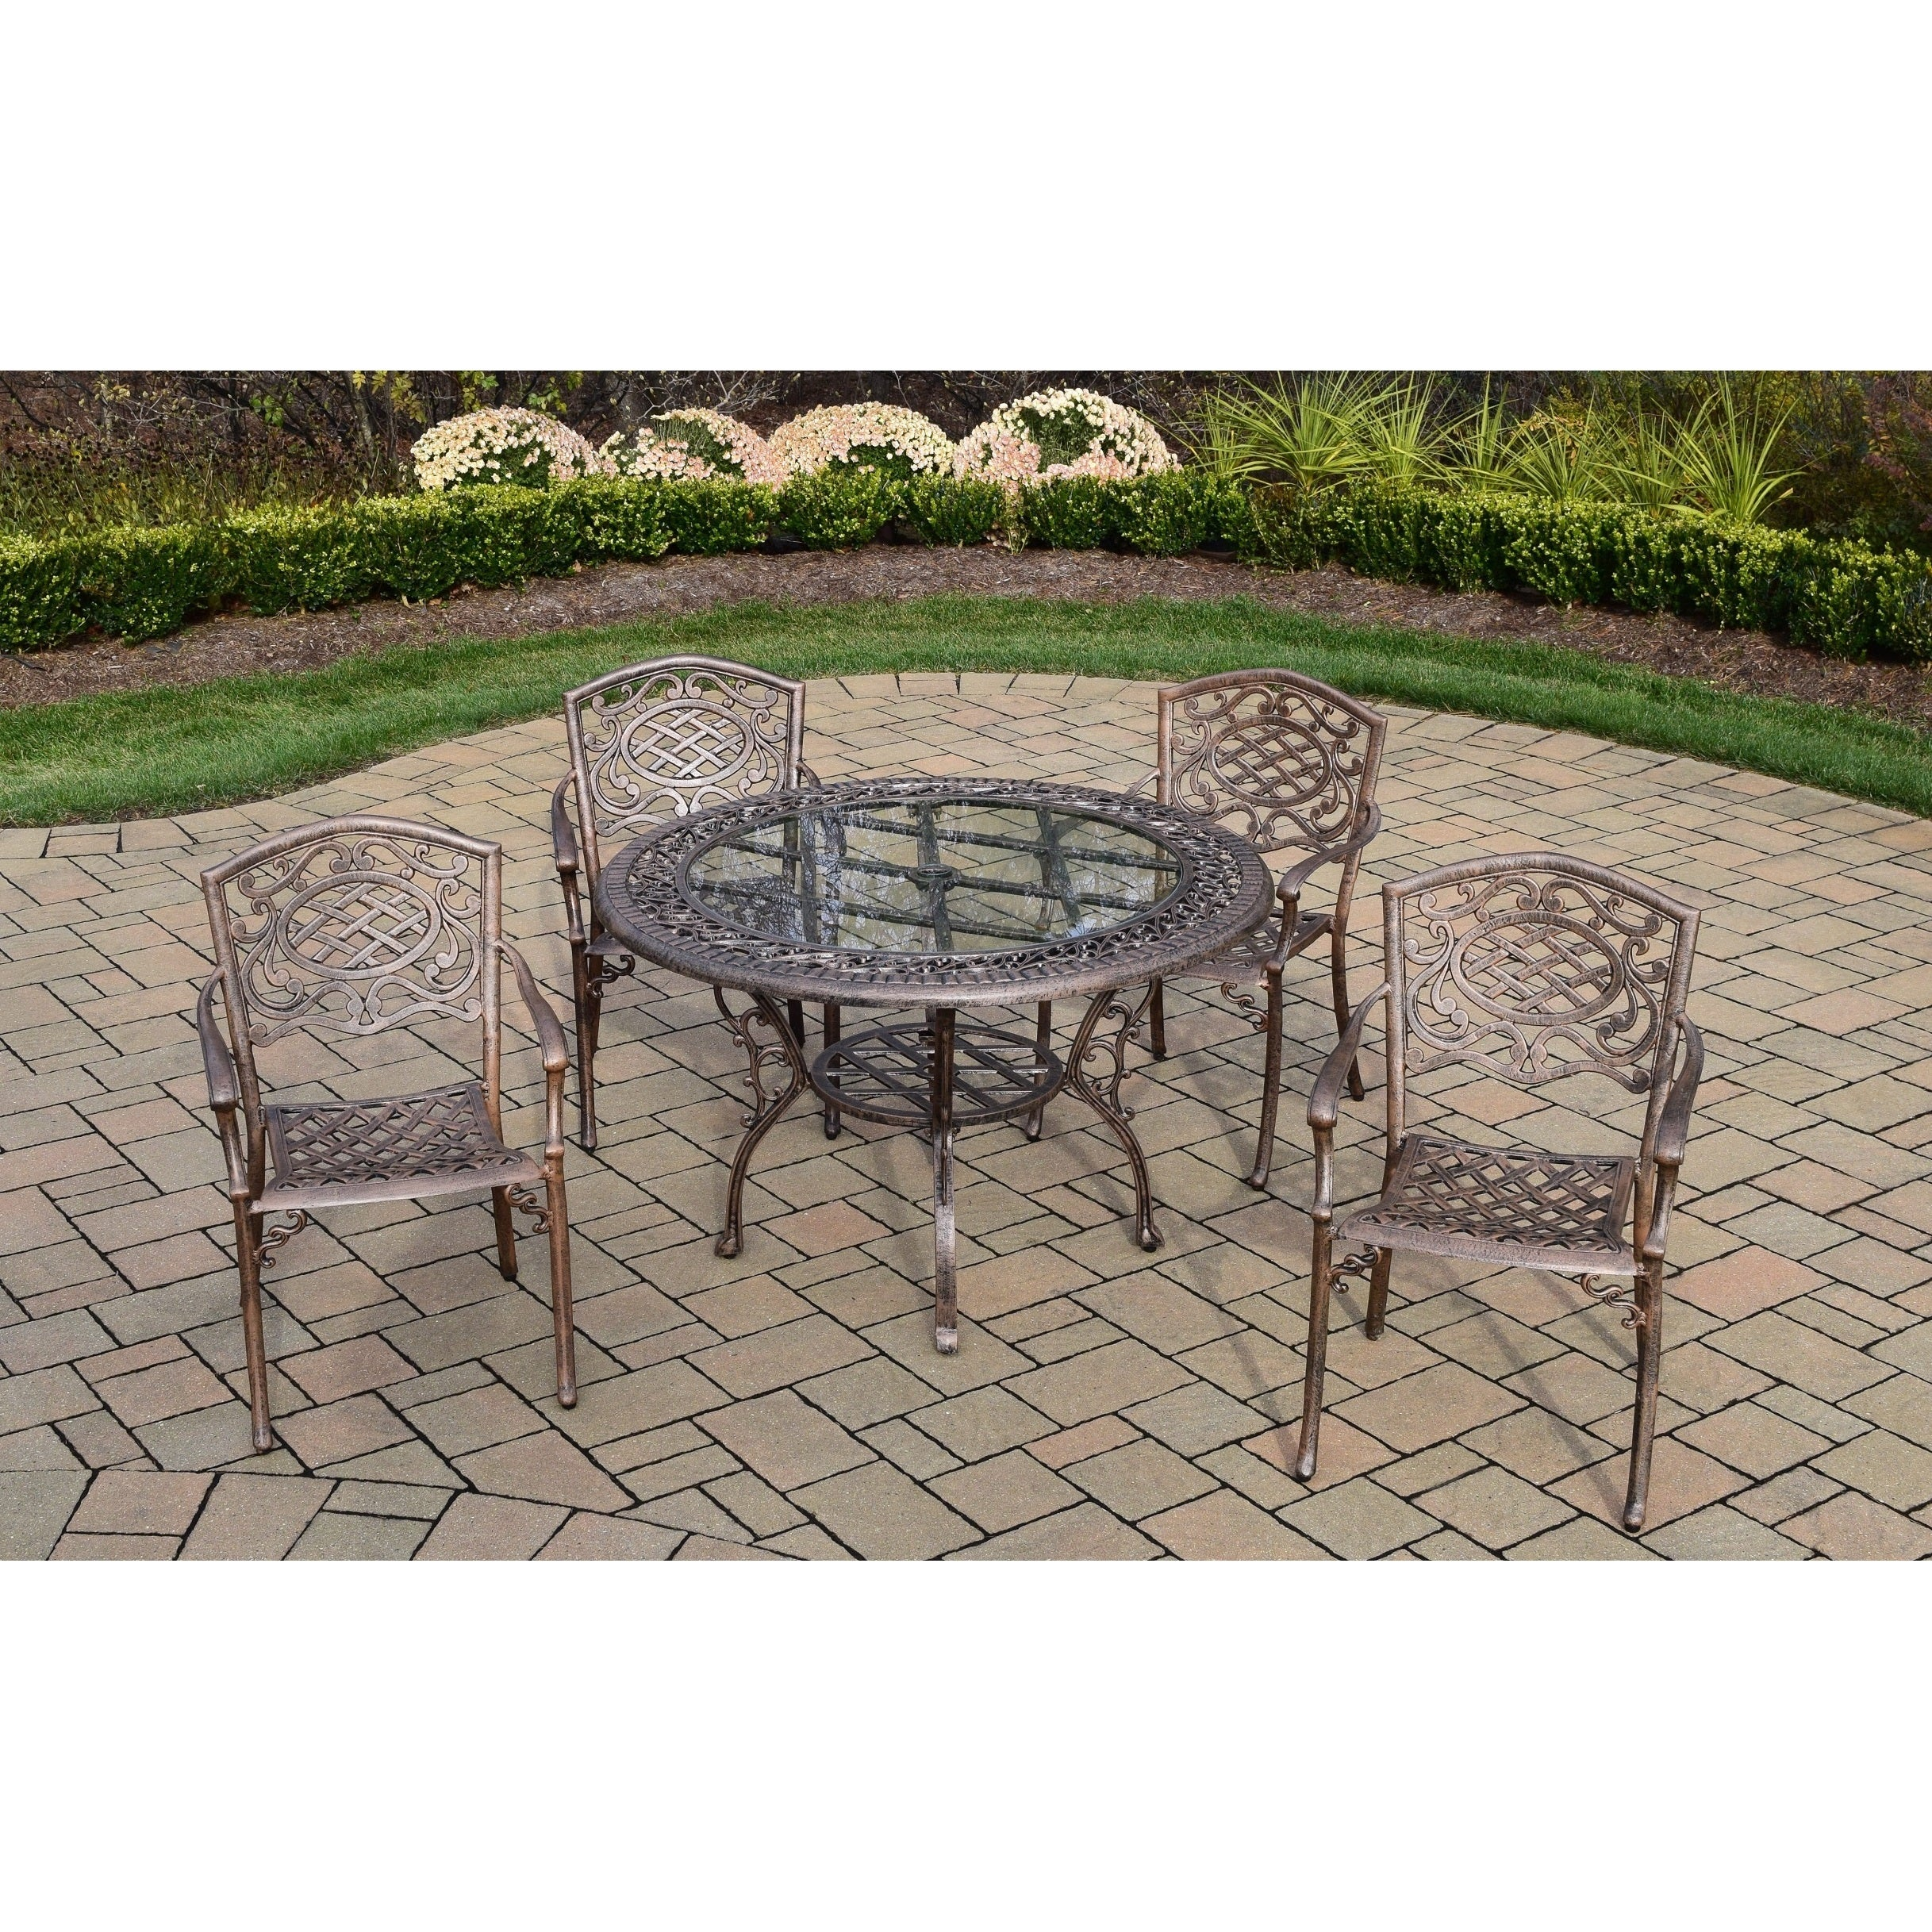 5 pc dining set with 48 inch round table and 4 stackable arm chairs